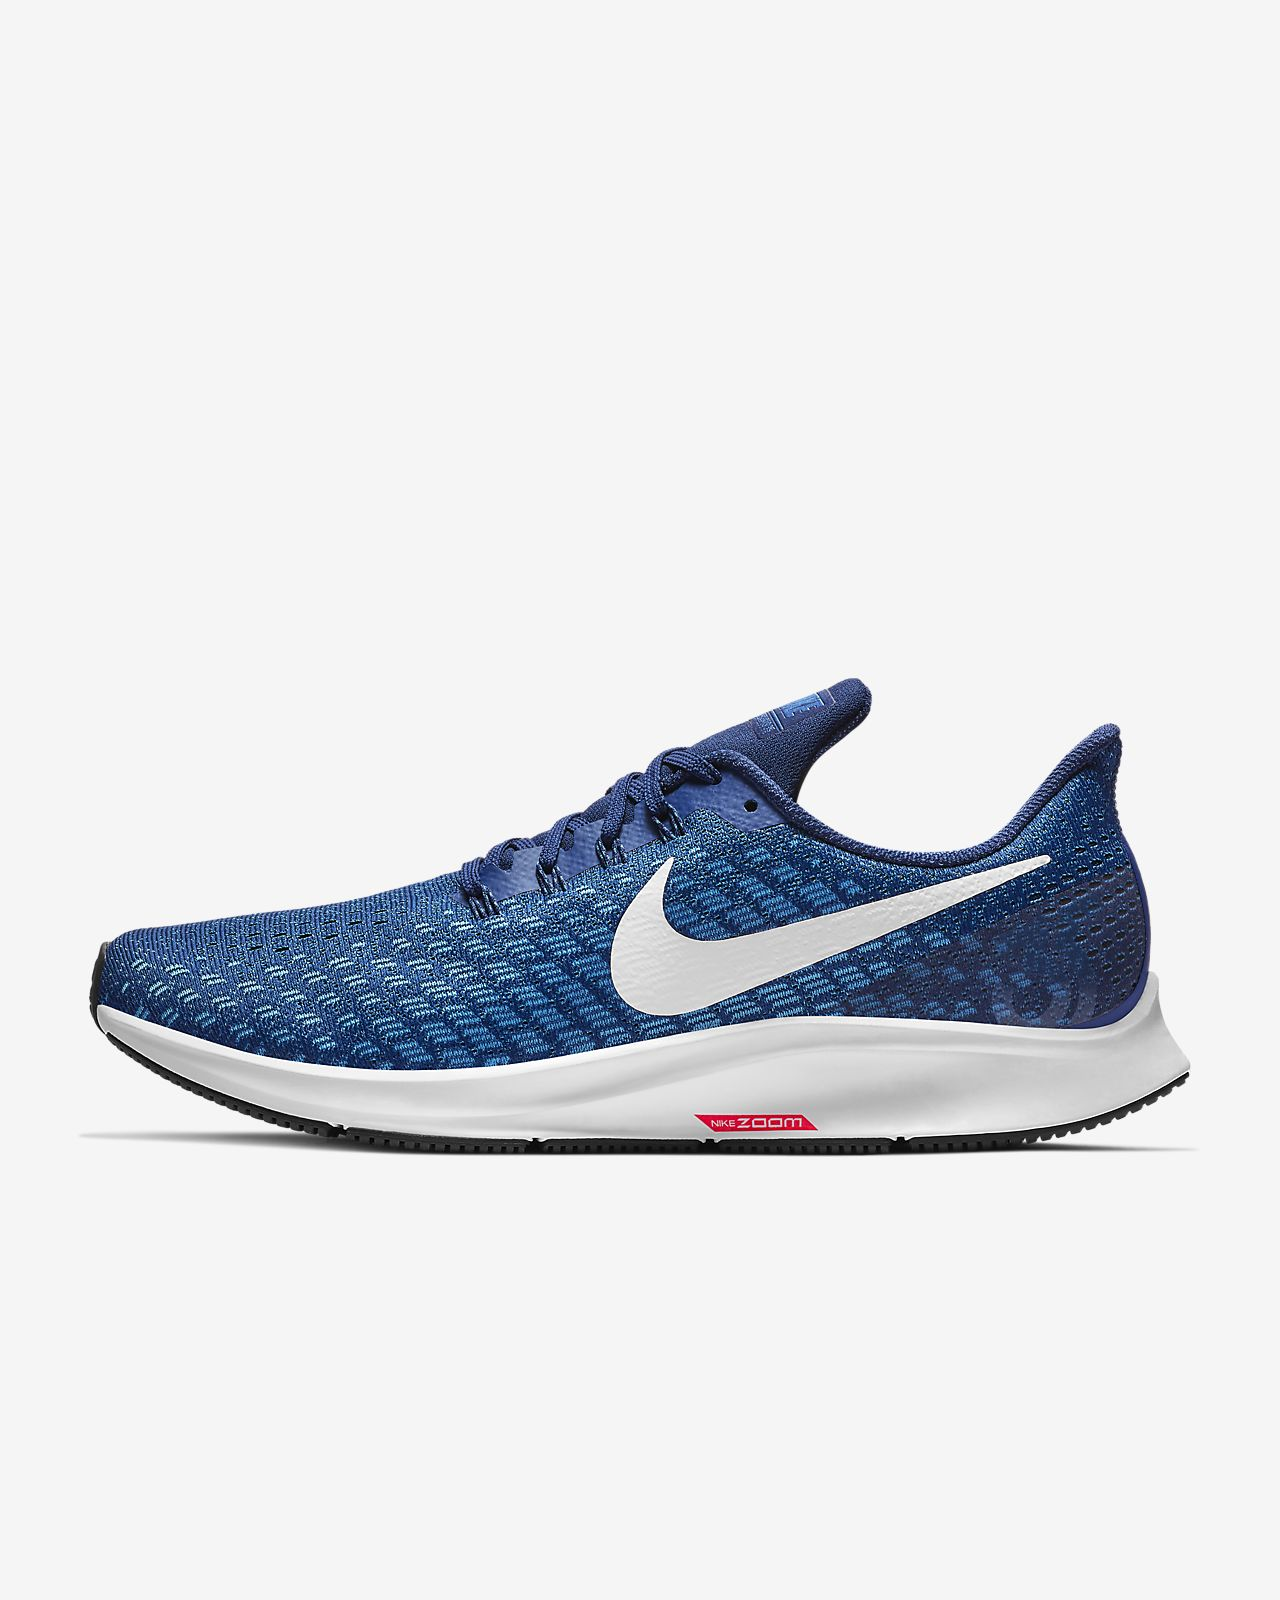 timeless design 5d5c6 51254 Nike Air Zoom Pegasus 35 Zapatillas de running - Hombre